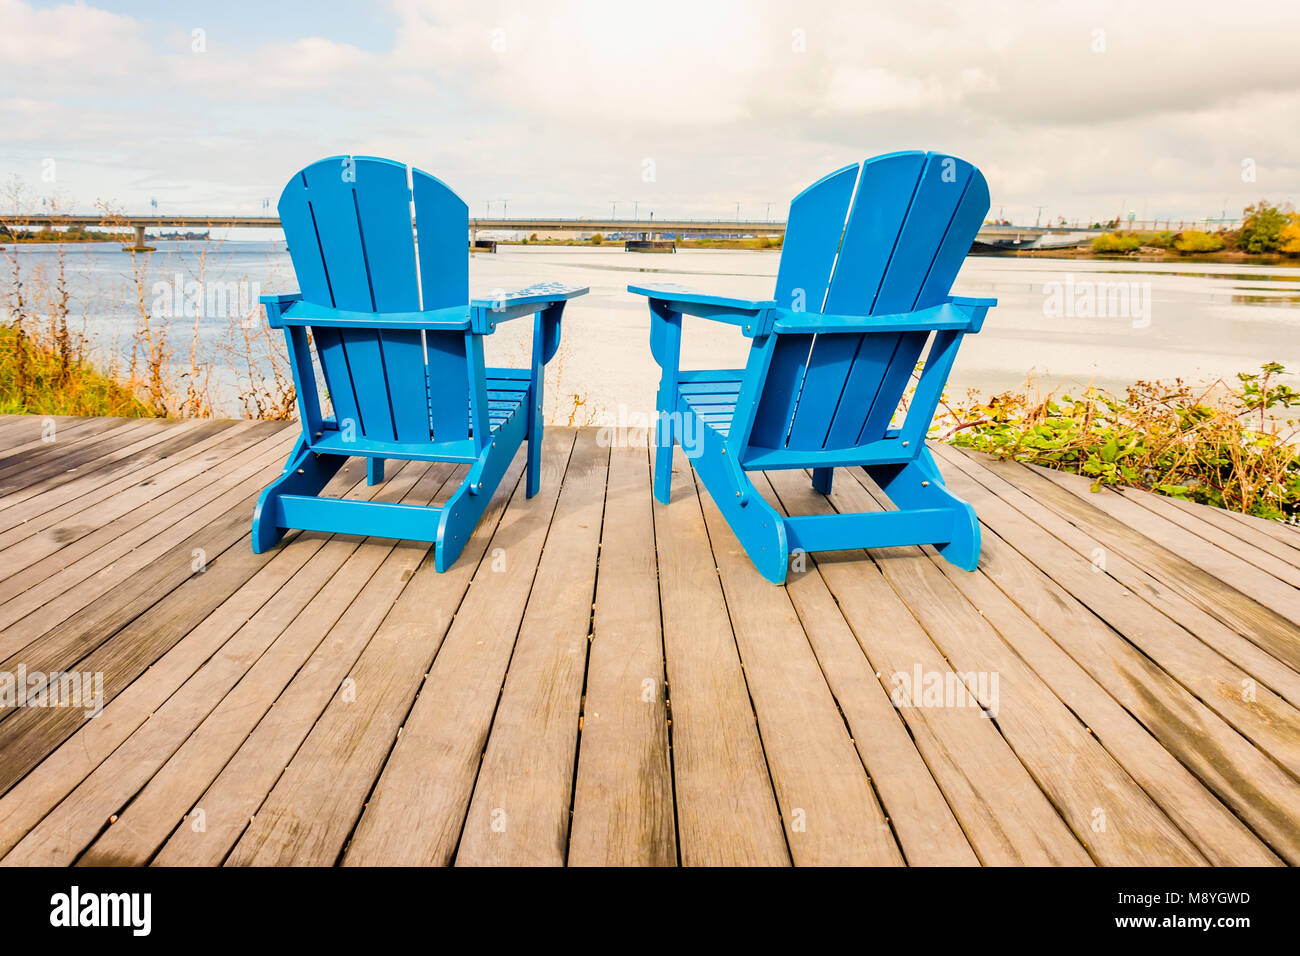 Two Empty Blue Chaise Longue Stand On The Wooden Floor Opposite River And Bridge